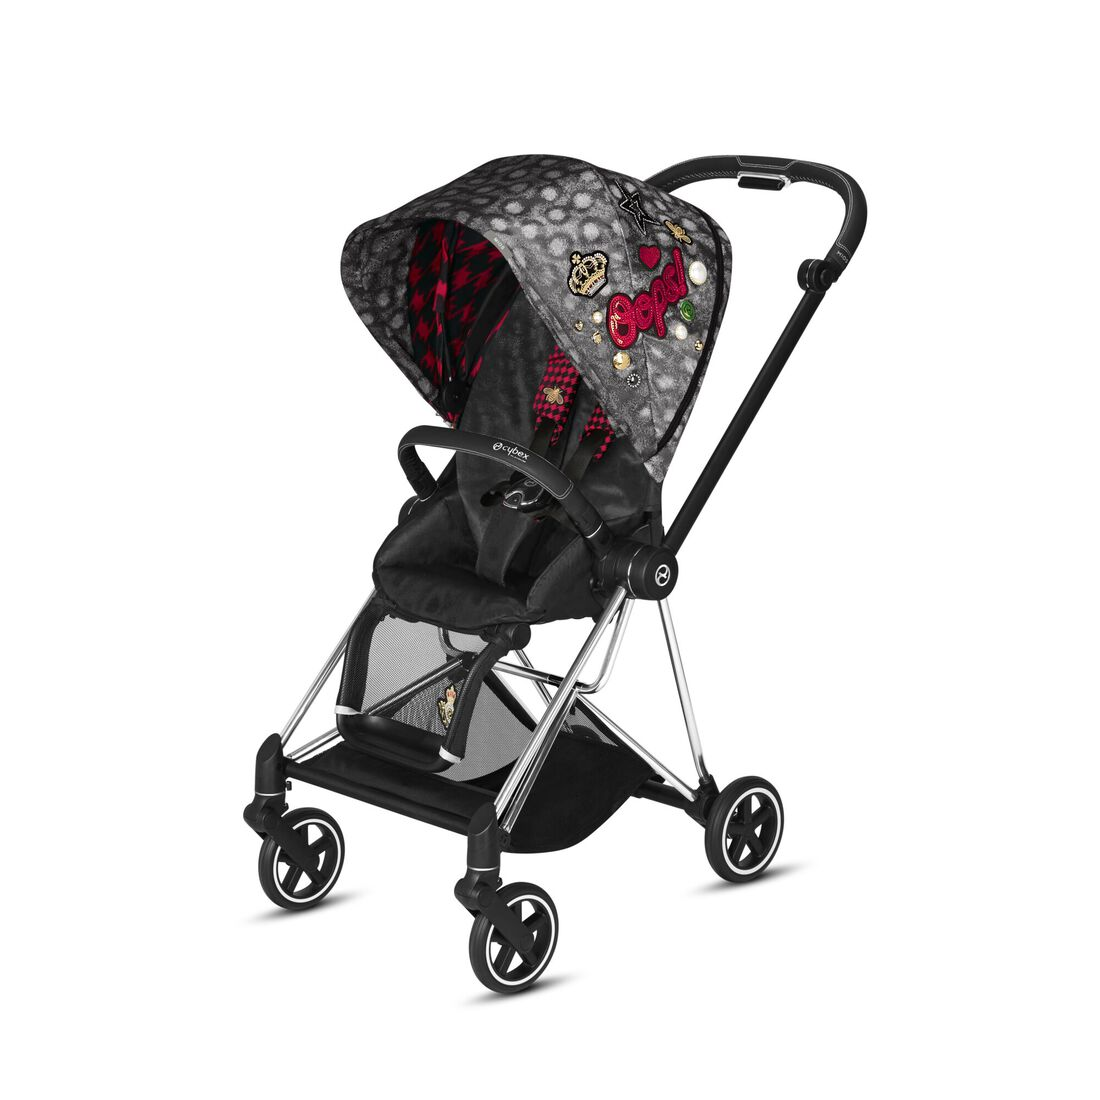 CYBEX Mios Seat Pack - Rebellious in Rebellious large image number 2